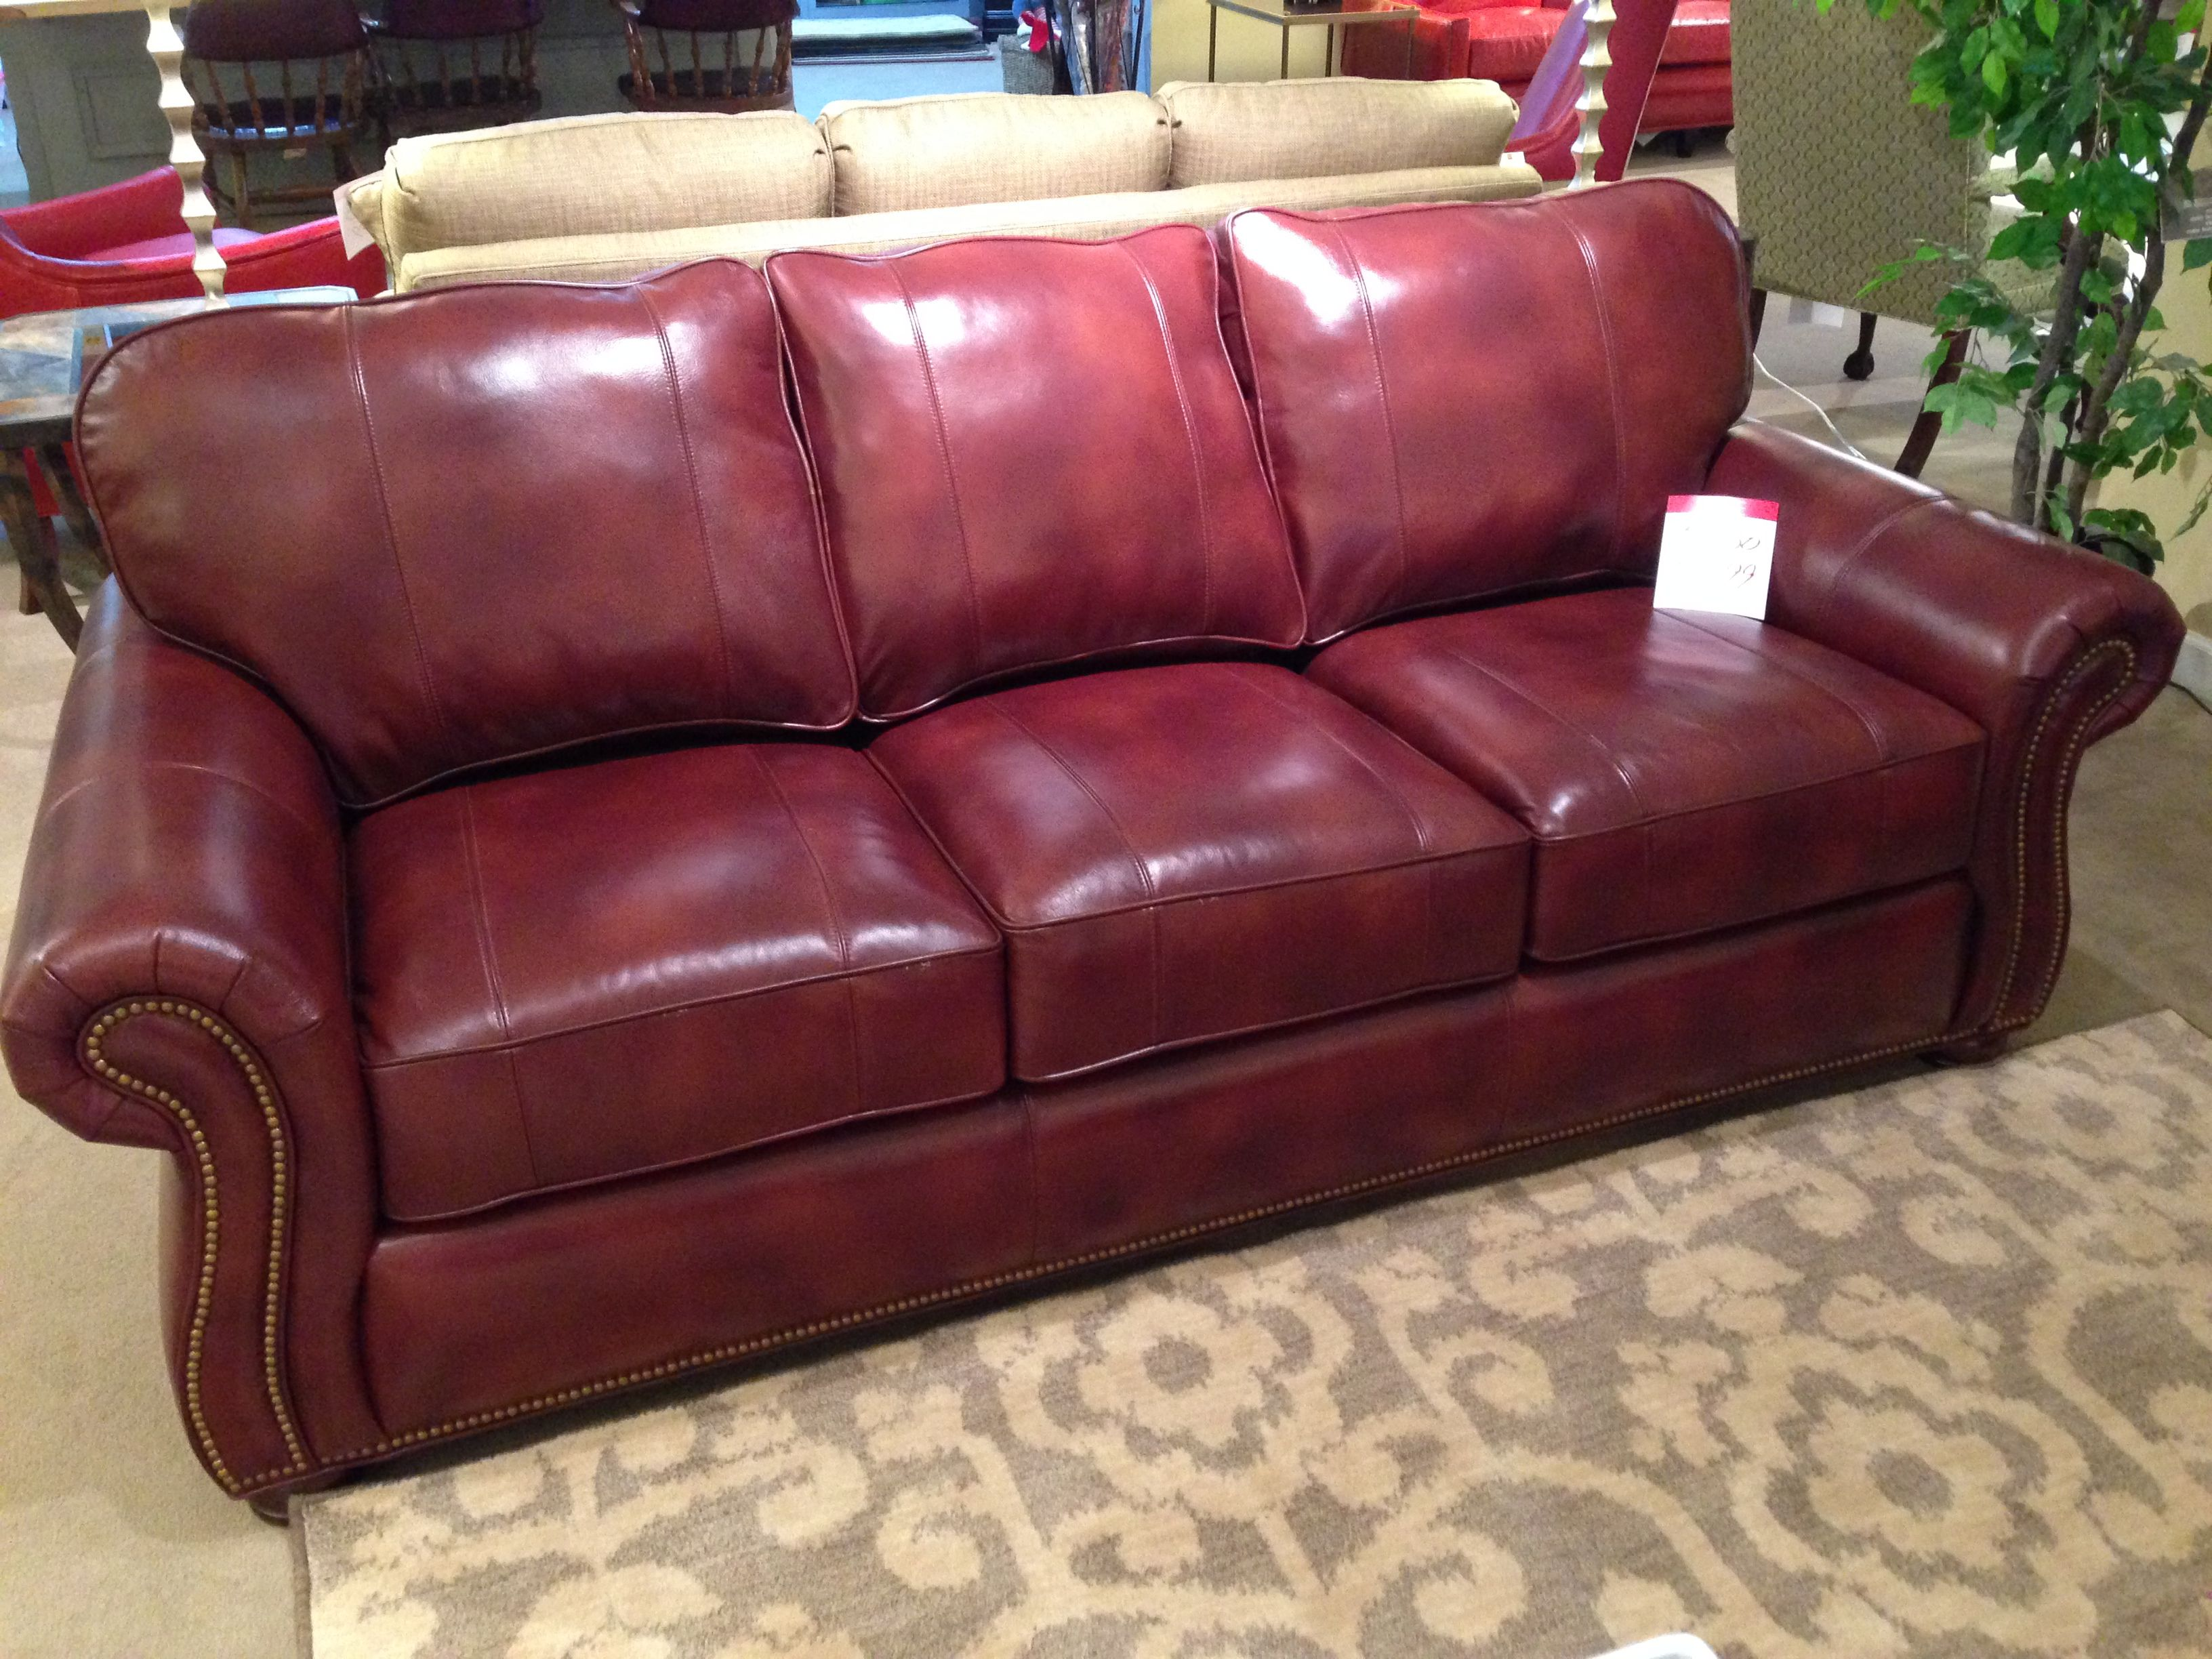 Leather Sofa with Nailhead Trim | Spotlight on Leather ...